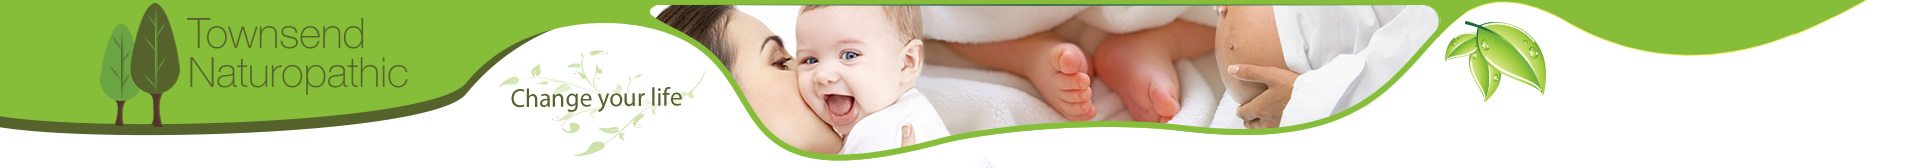 Fertility & Pre-Conception Programs. Not getting pregnant, ask our professionals for help.